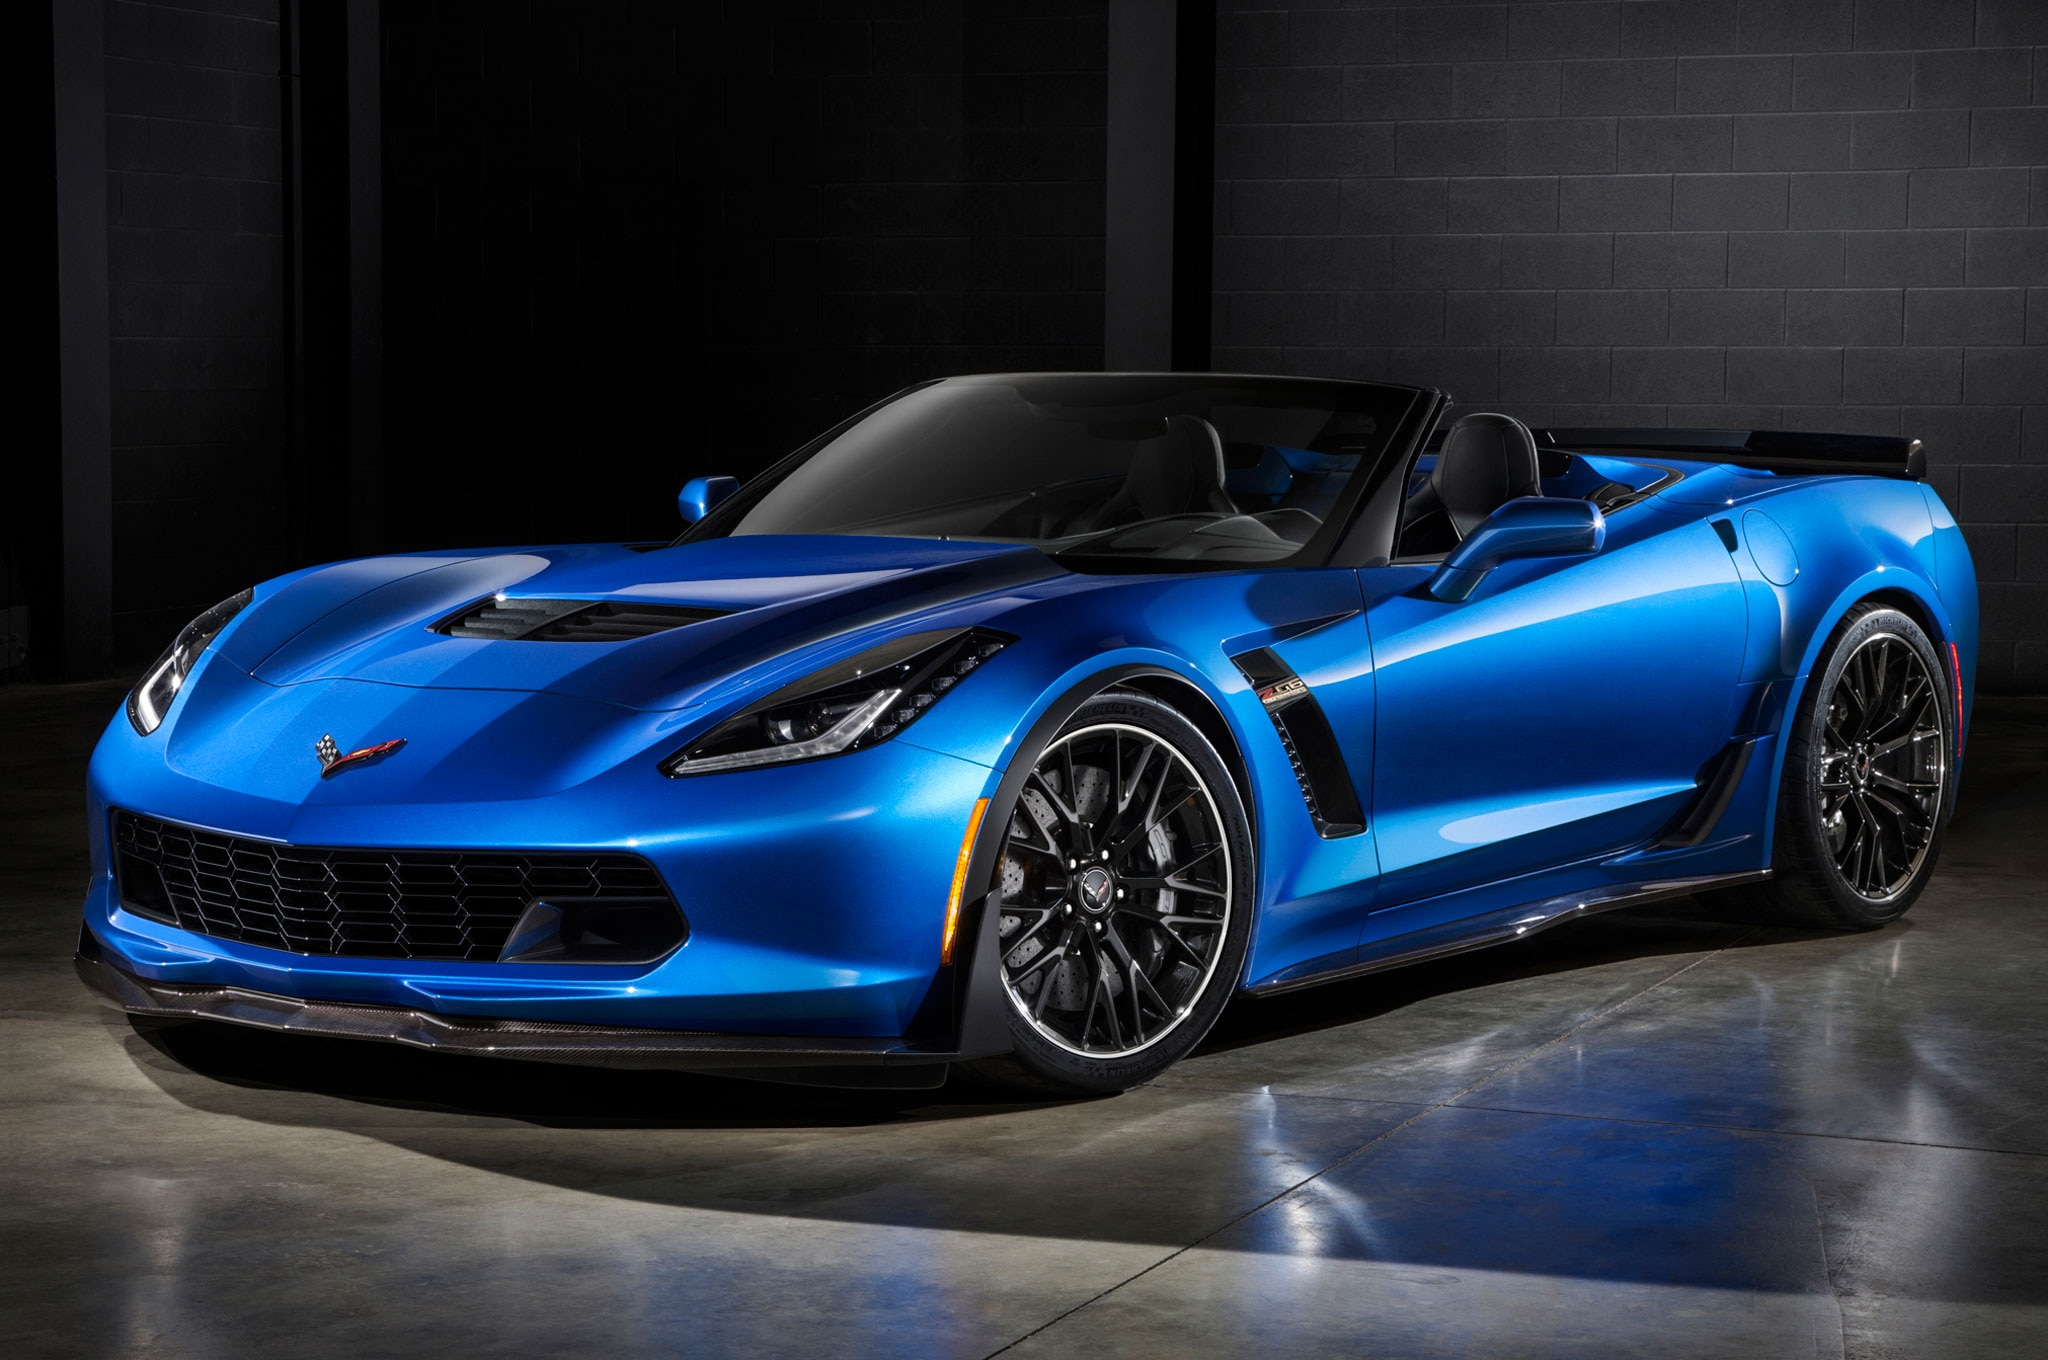 2015 chevrolet corvette z06 convertible review. Black Bedroom Furniture Sets. Home Design Ideas